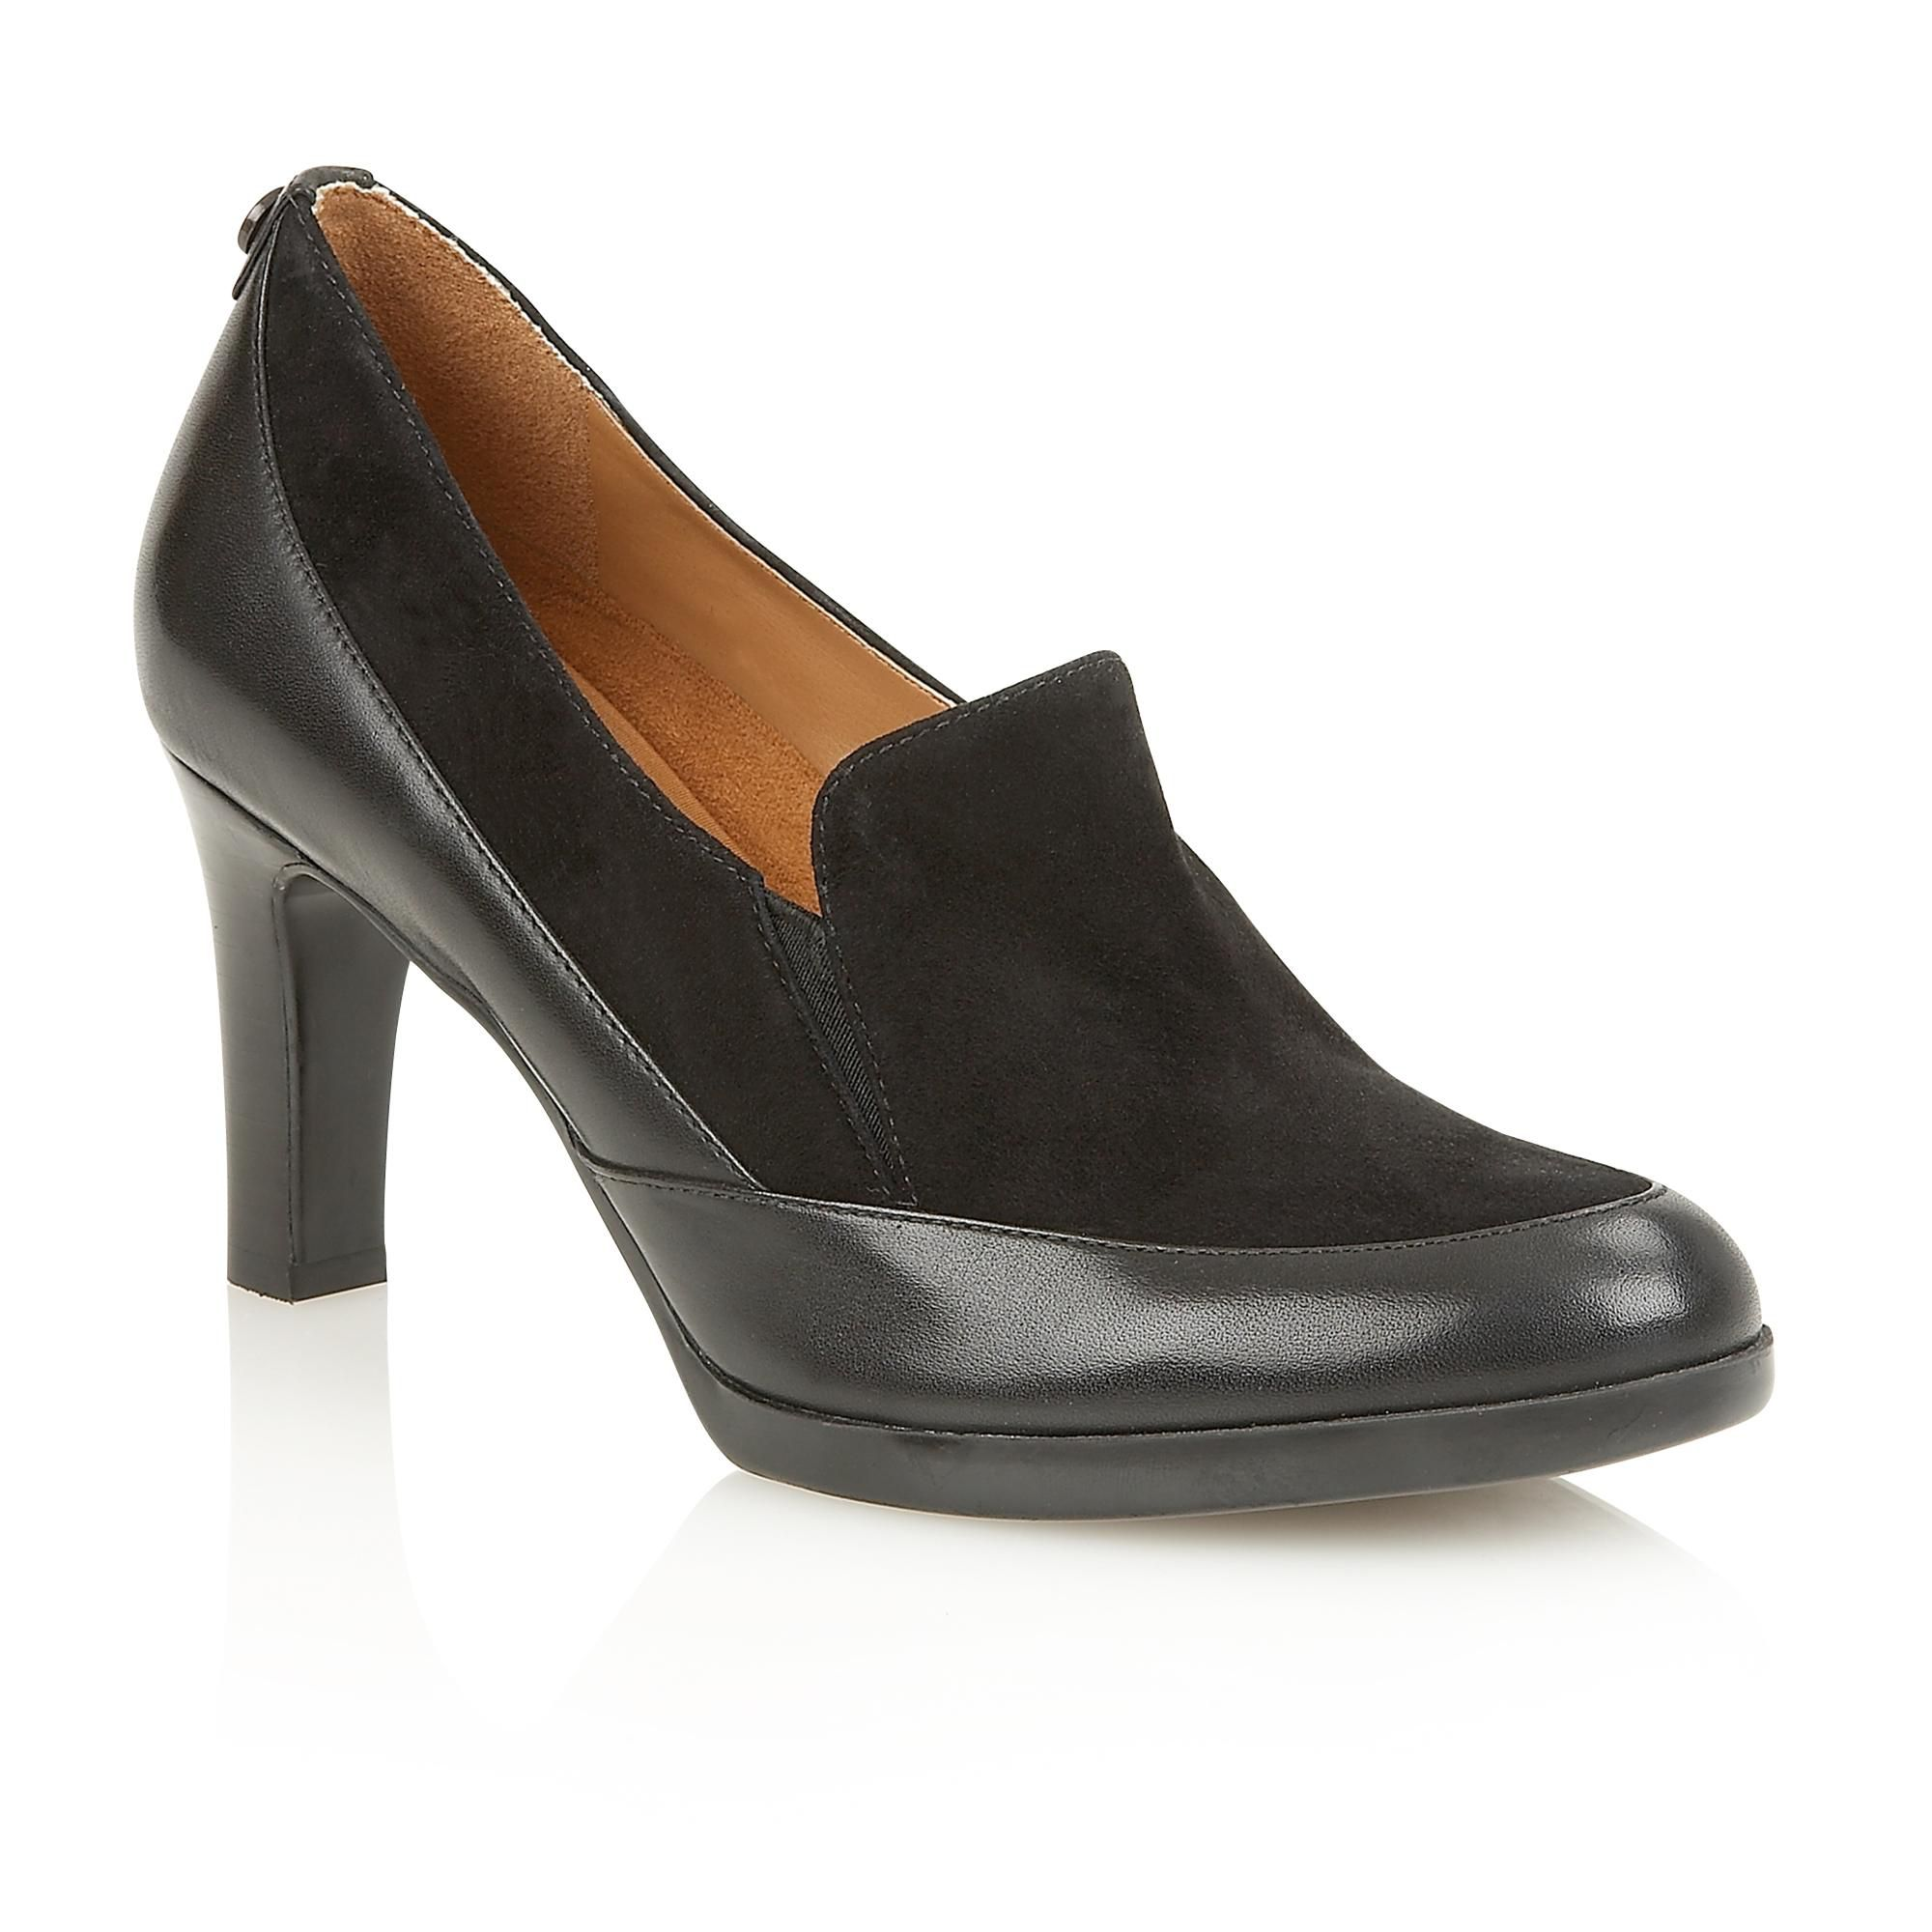 Naturalizer Naturalizer Angie court shoes, Brown